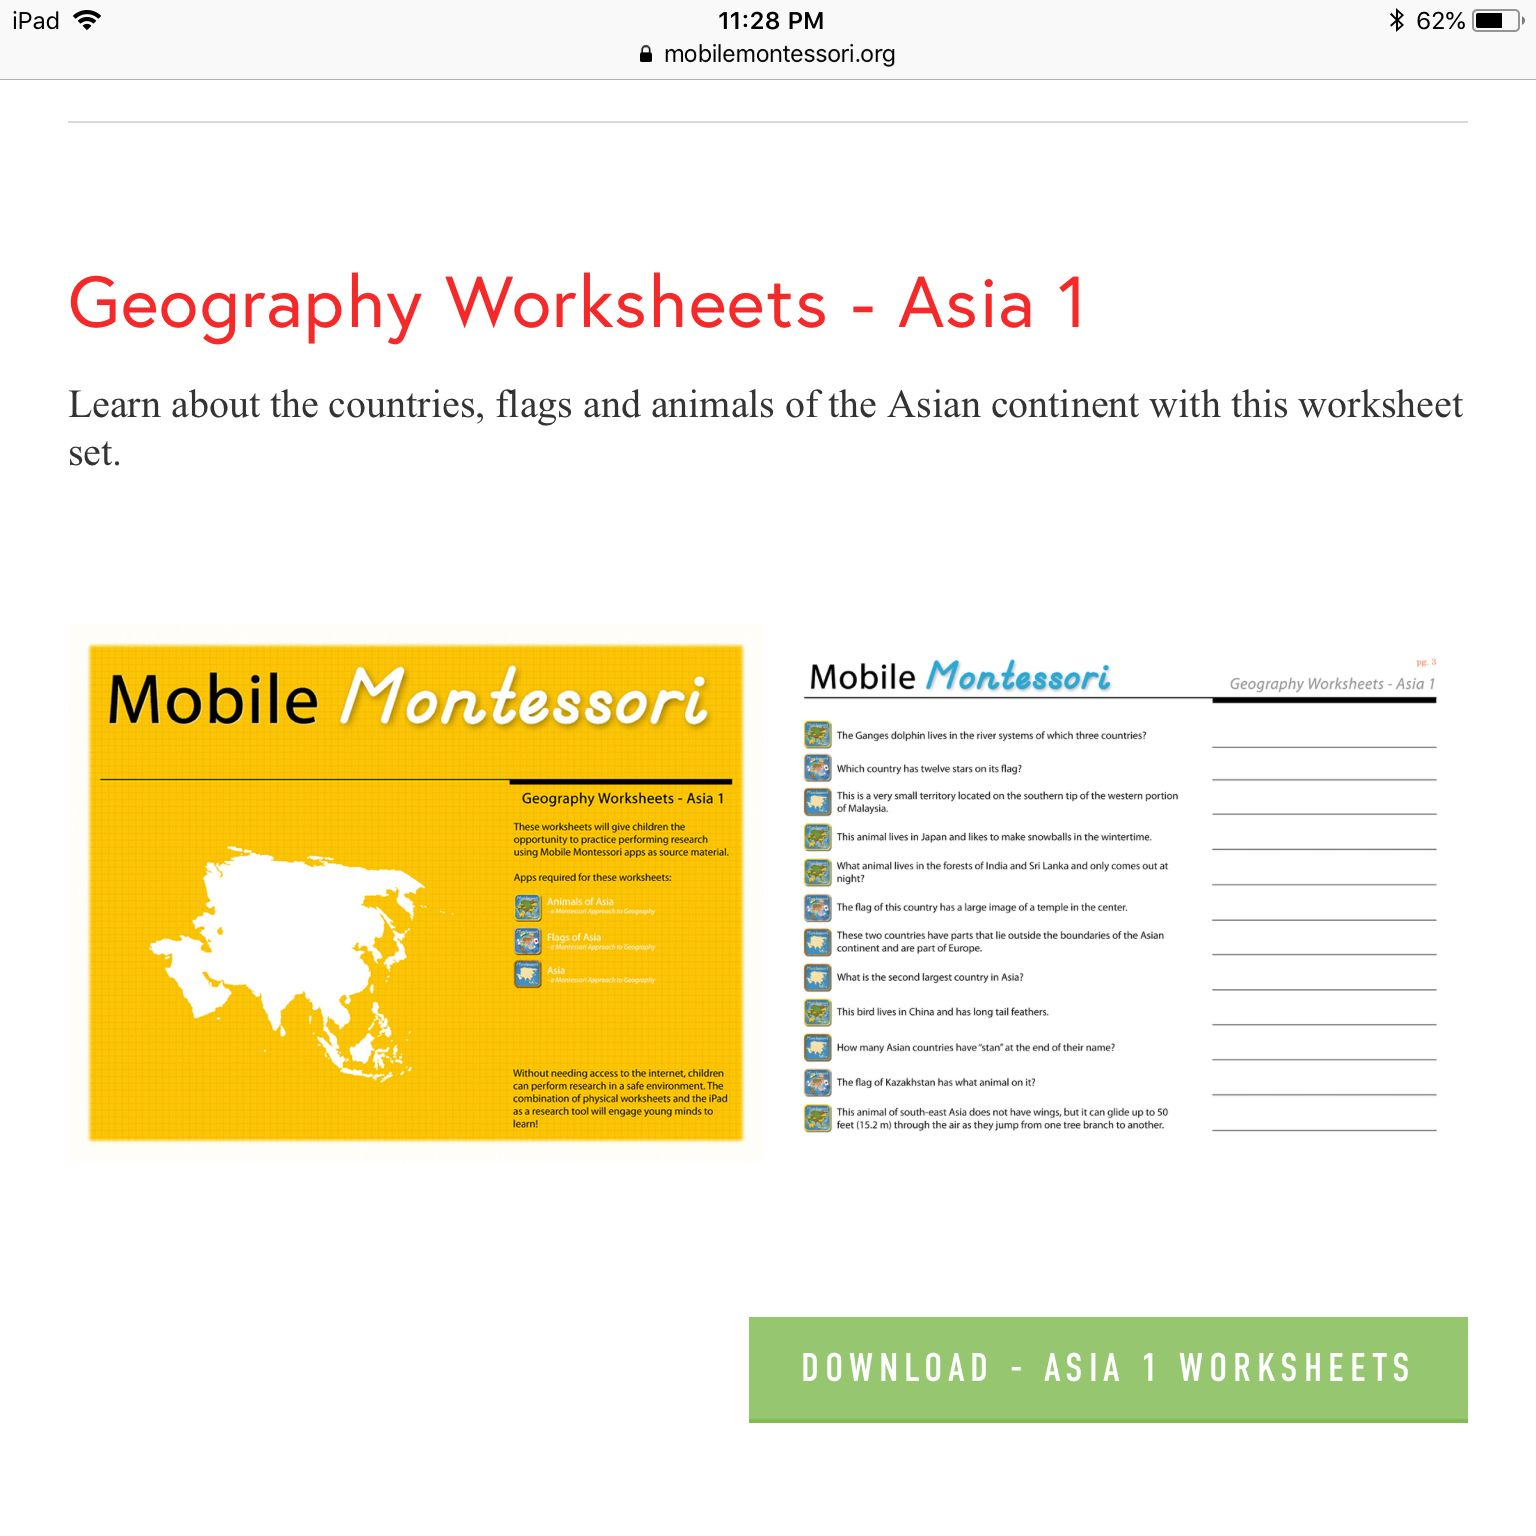 Didyouknow We Have Printable Worksheets On Our Website